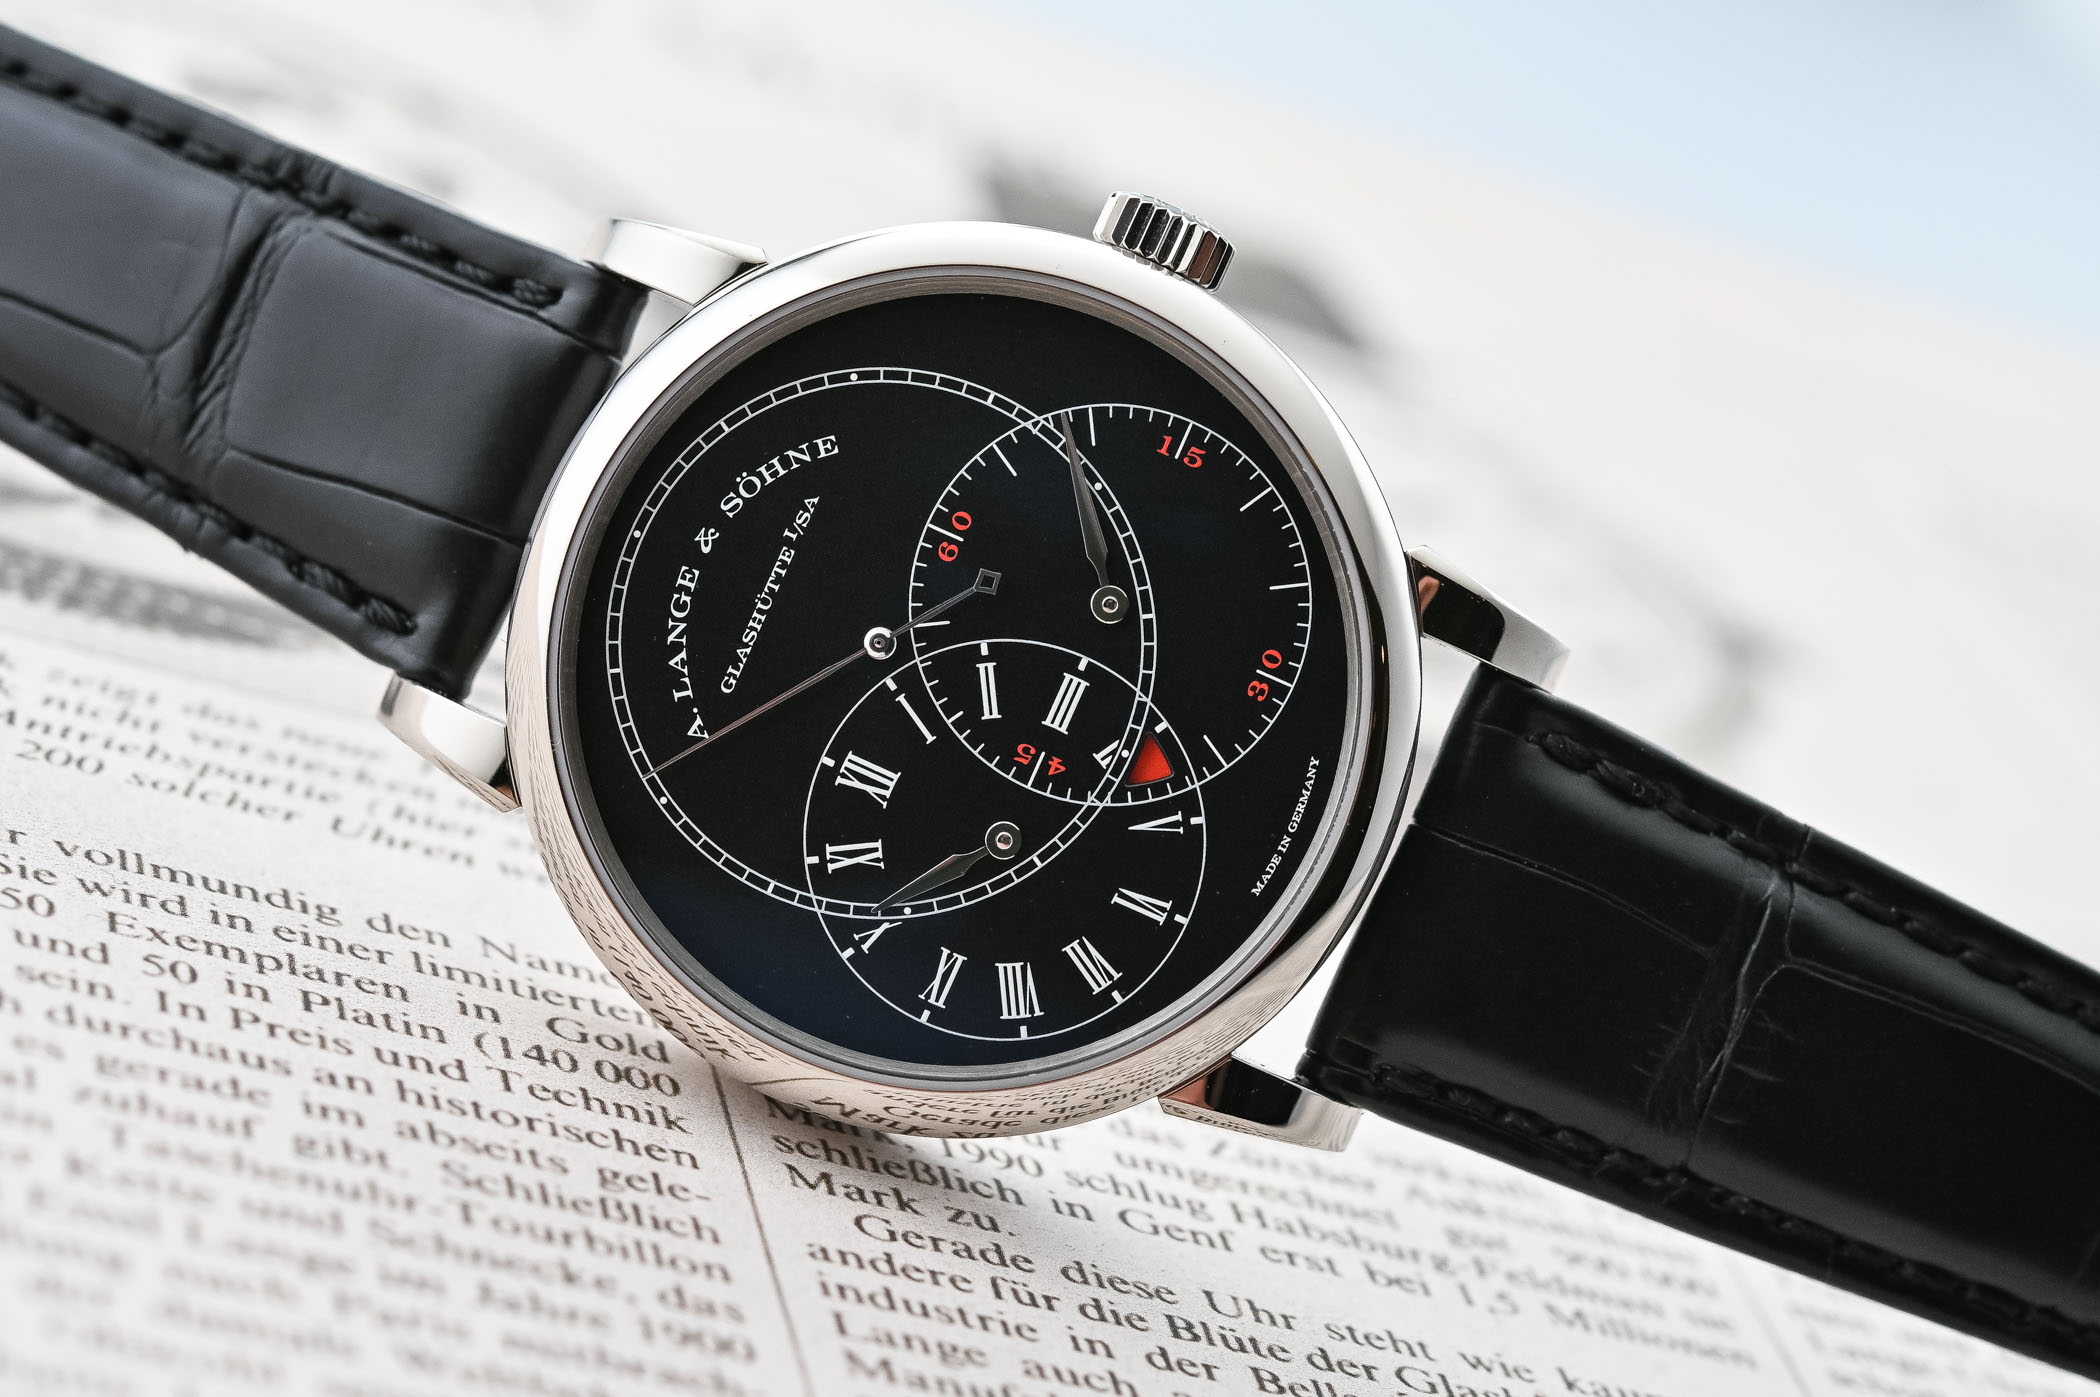 A Lange Sohne Richard Lange Jumping Seconds White Gold and Black Dial - SIHH 2019 - review - 11